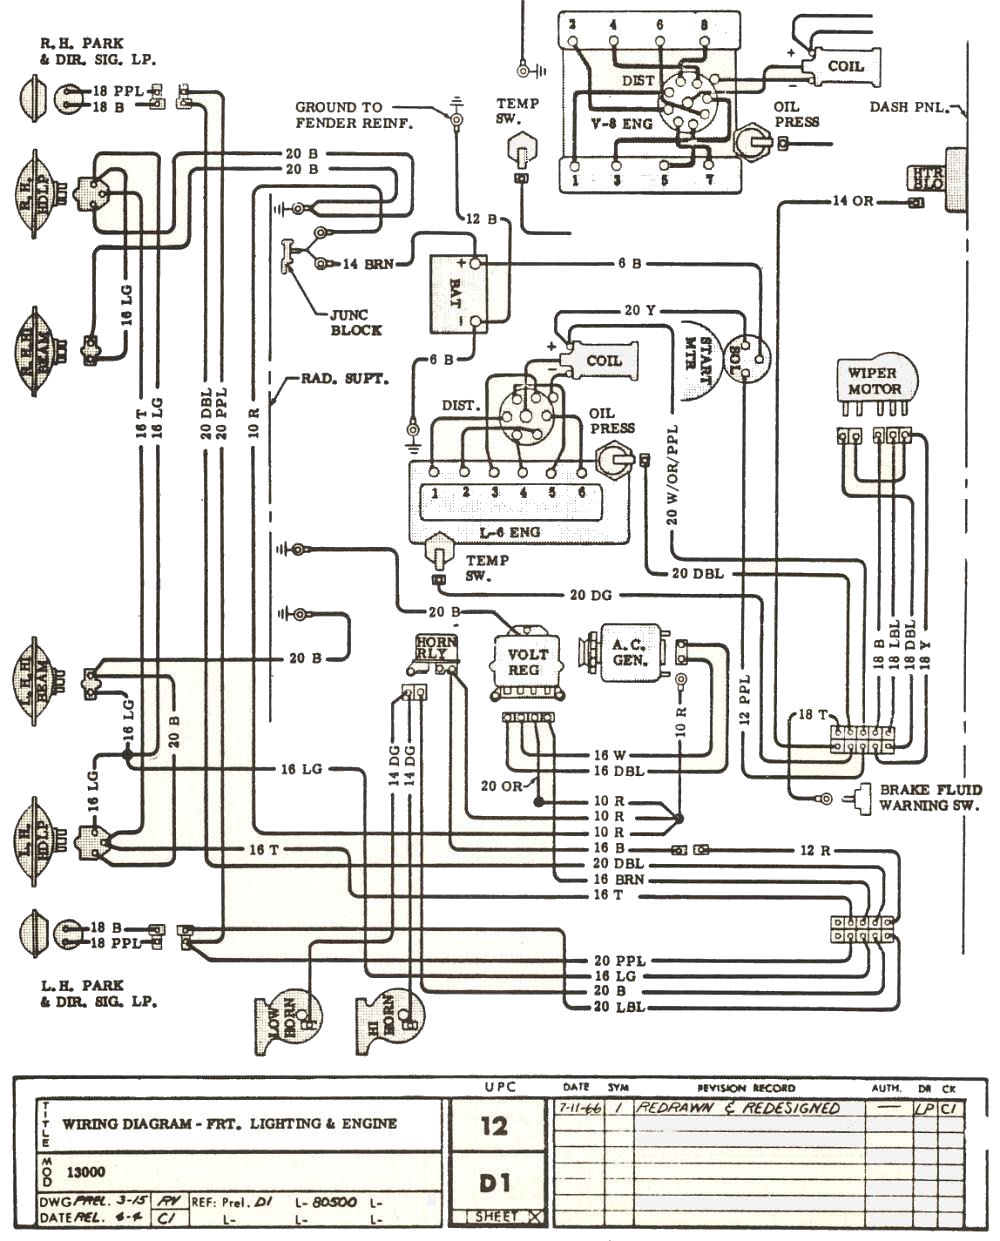 1966 chevelle engine harness diagram